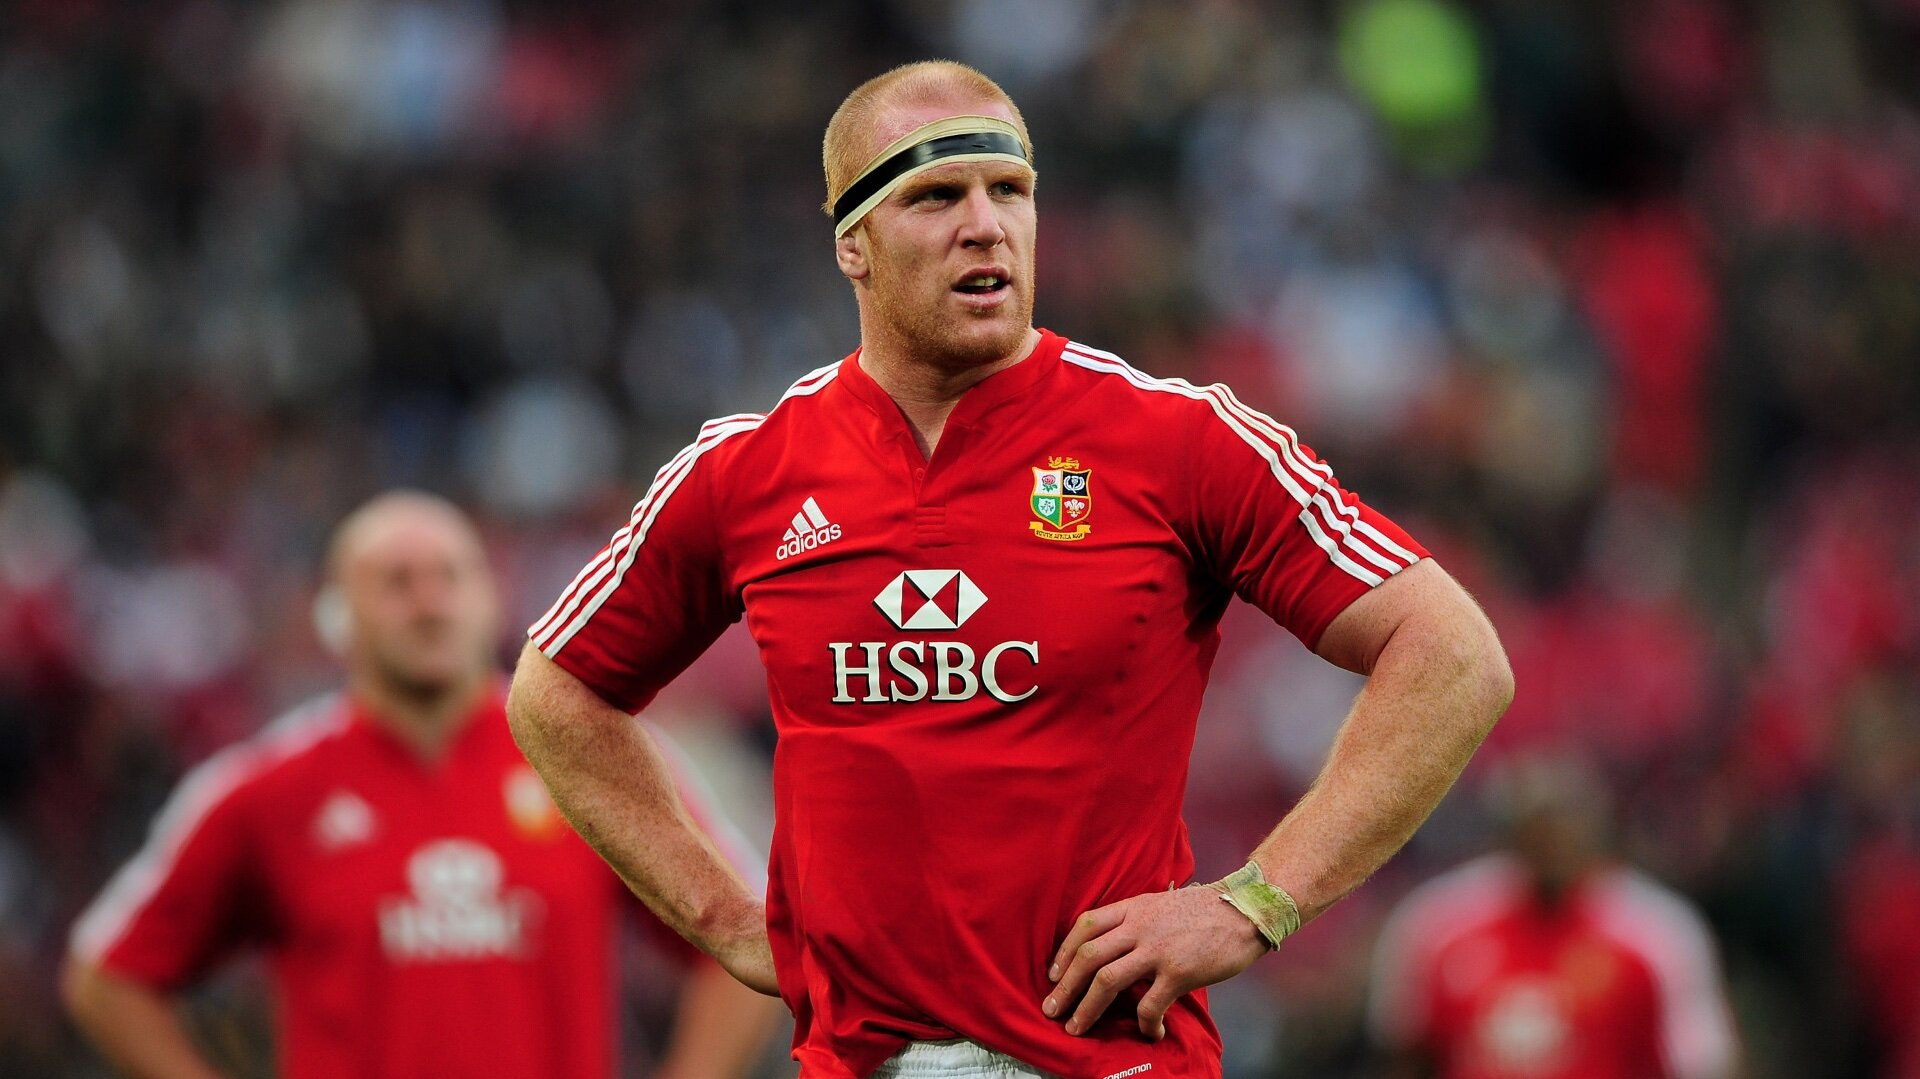 Paul O'Connell has named who has the necessary 'abrasive attitude' to lead the 2021 Lions